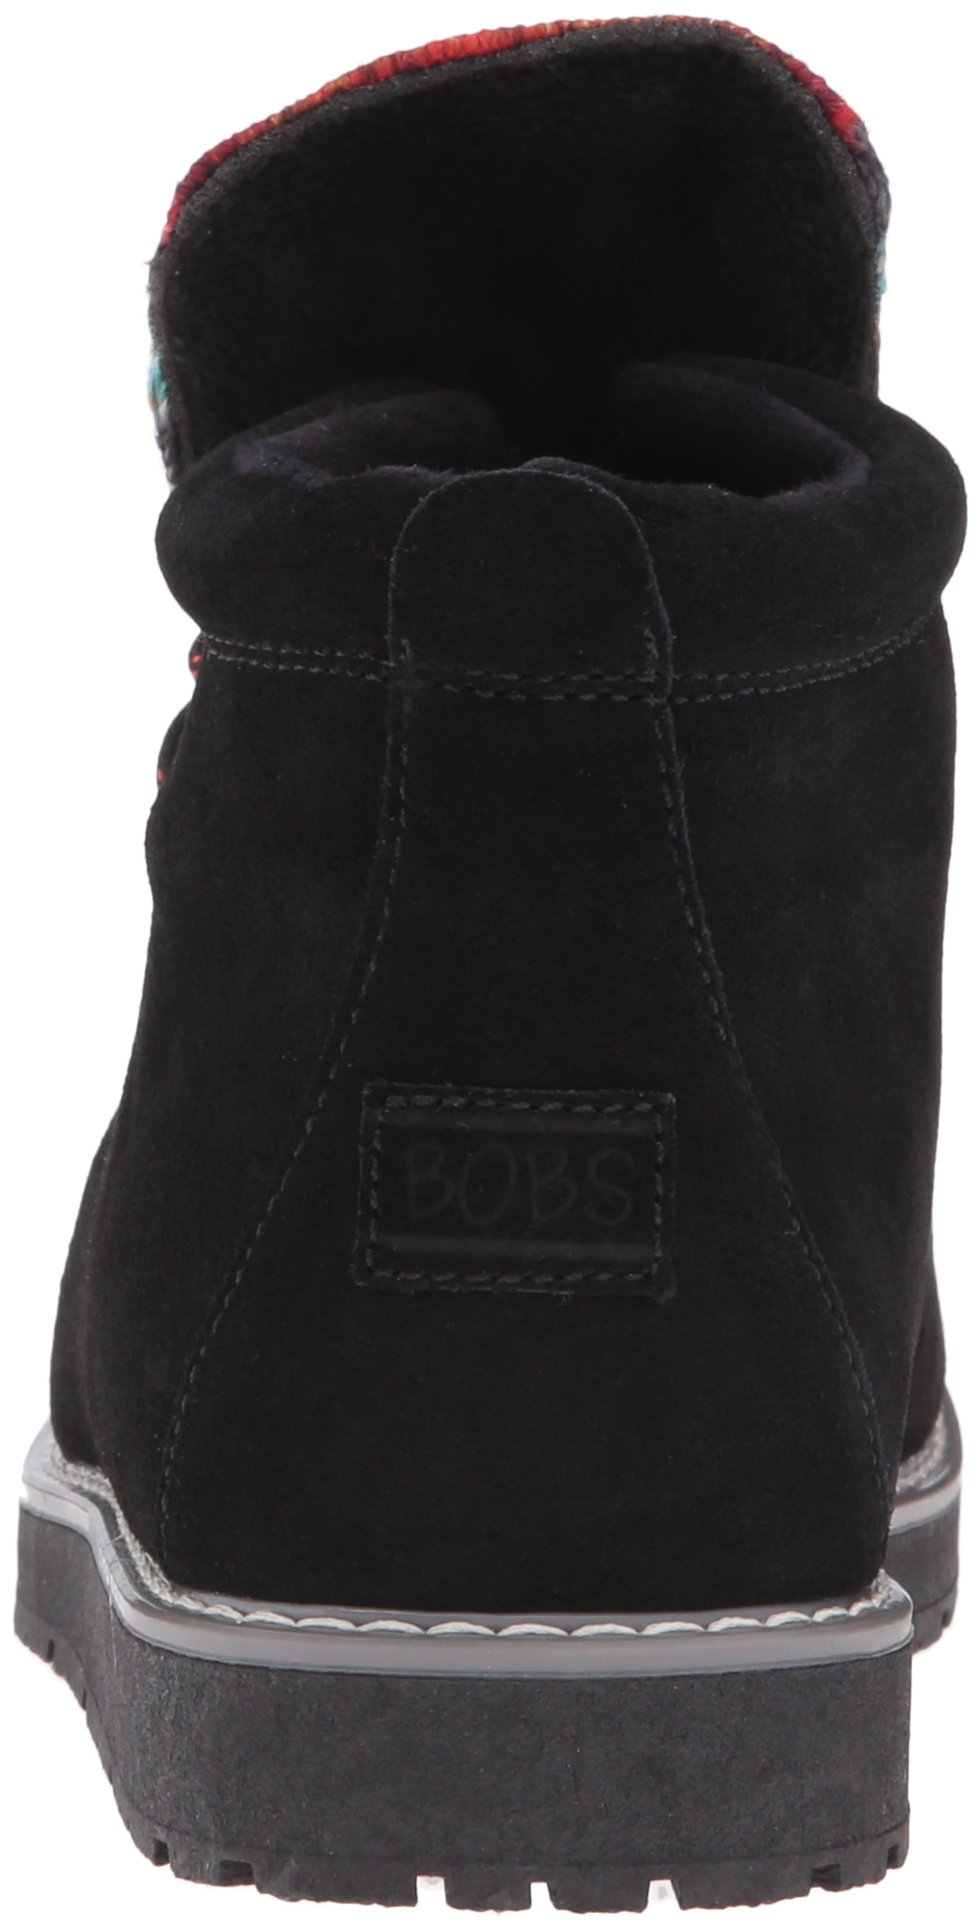 538304e1ada19 Skechers BOBS Women's Bobs Alpine-S'Mores Ankle Bootie